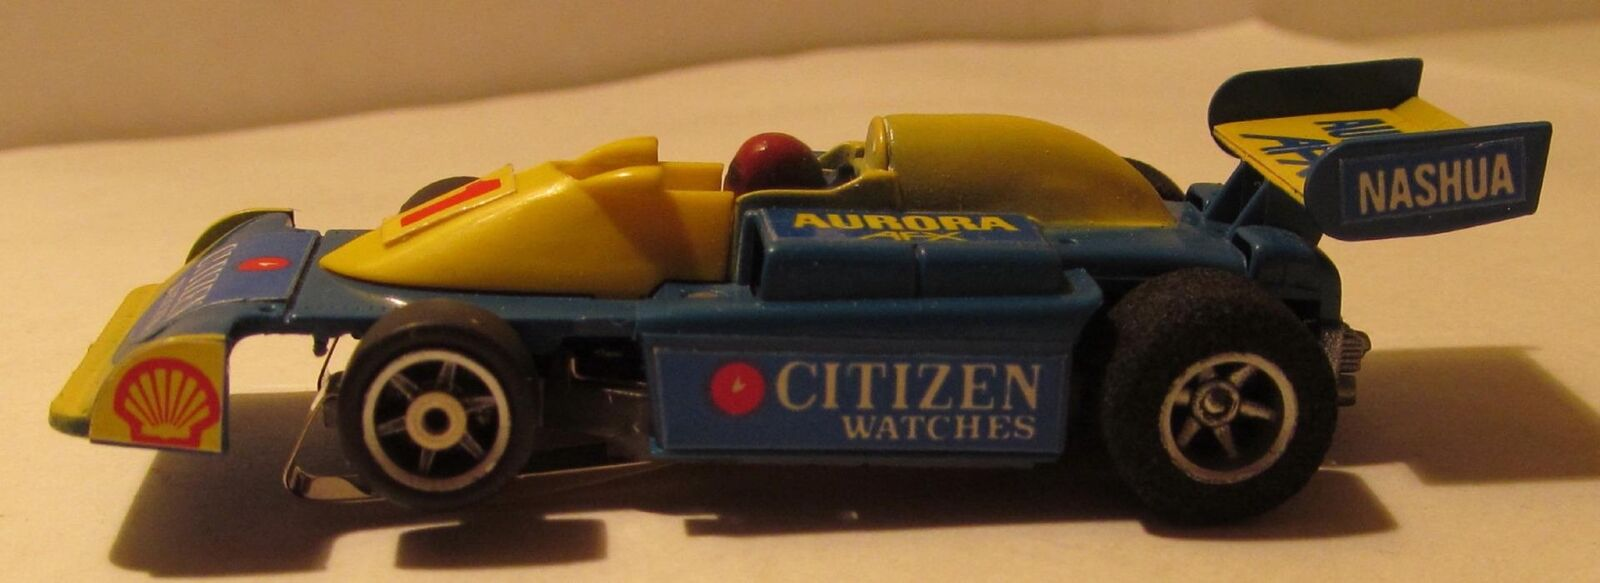 AFX G-Plus Montres Citizen FORMULE 5000 slot car,  S-040 CITIZEN WATCH F-5000